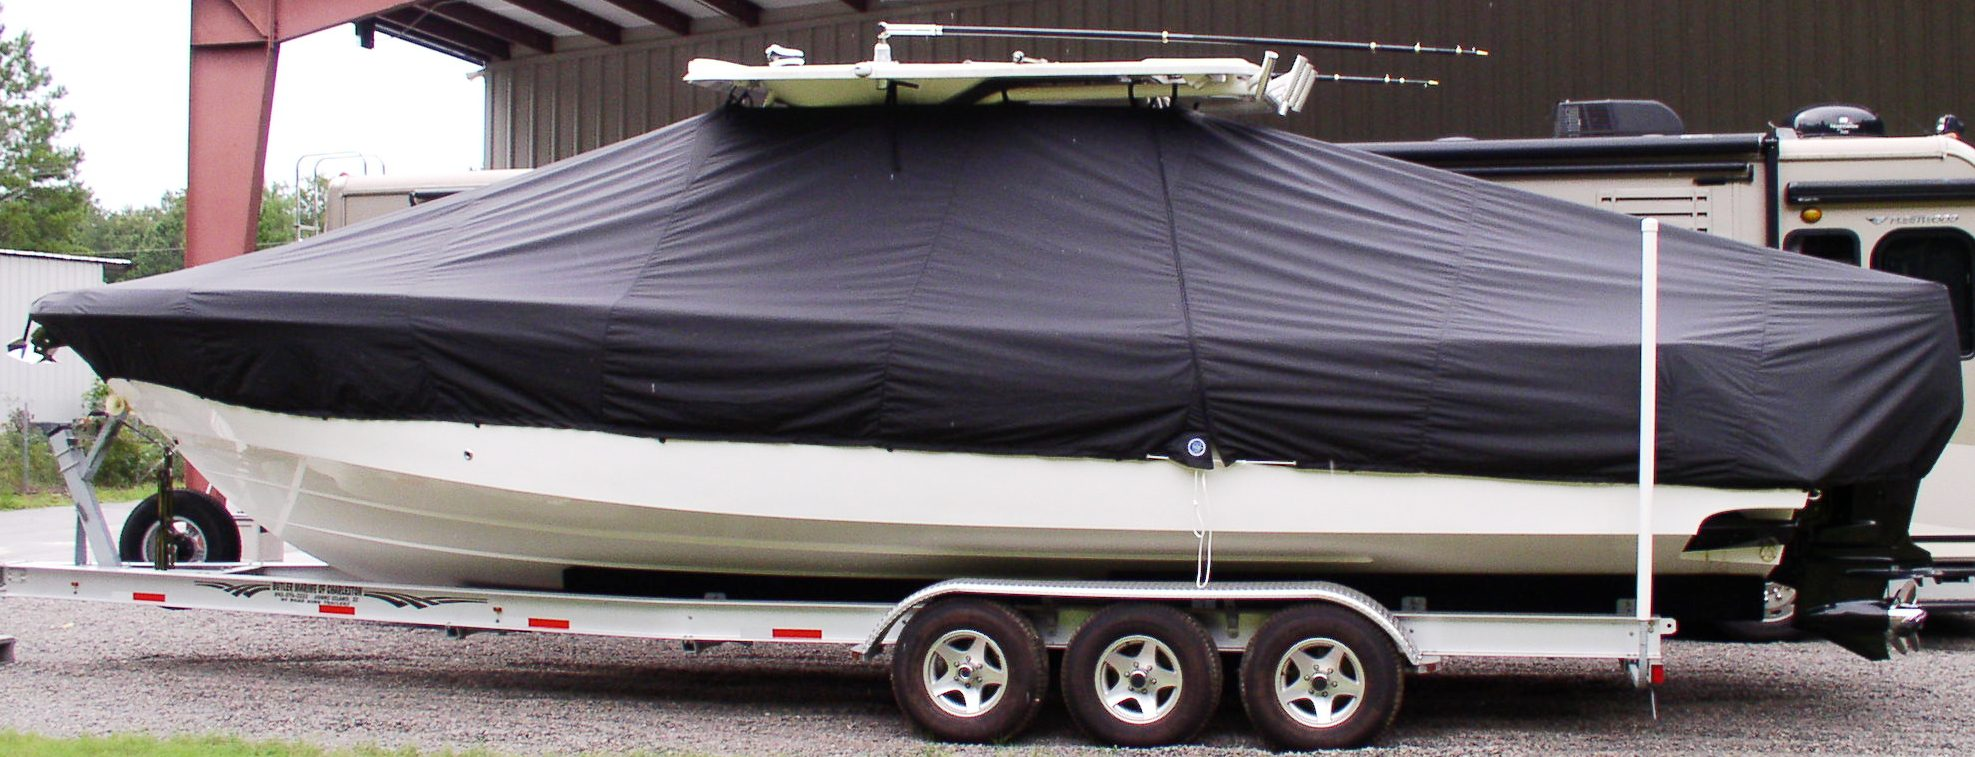 Everglades 350CC, 20xx, TTopCovers™ T-Top boat cover, port side